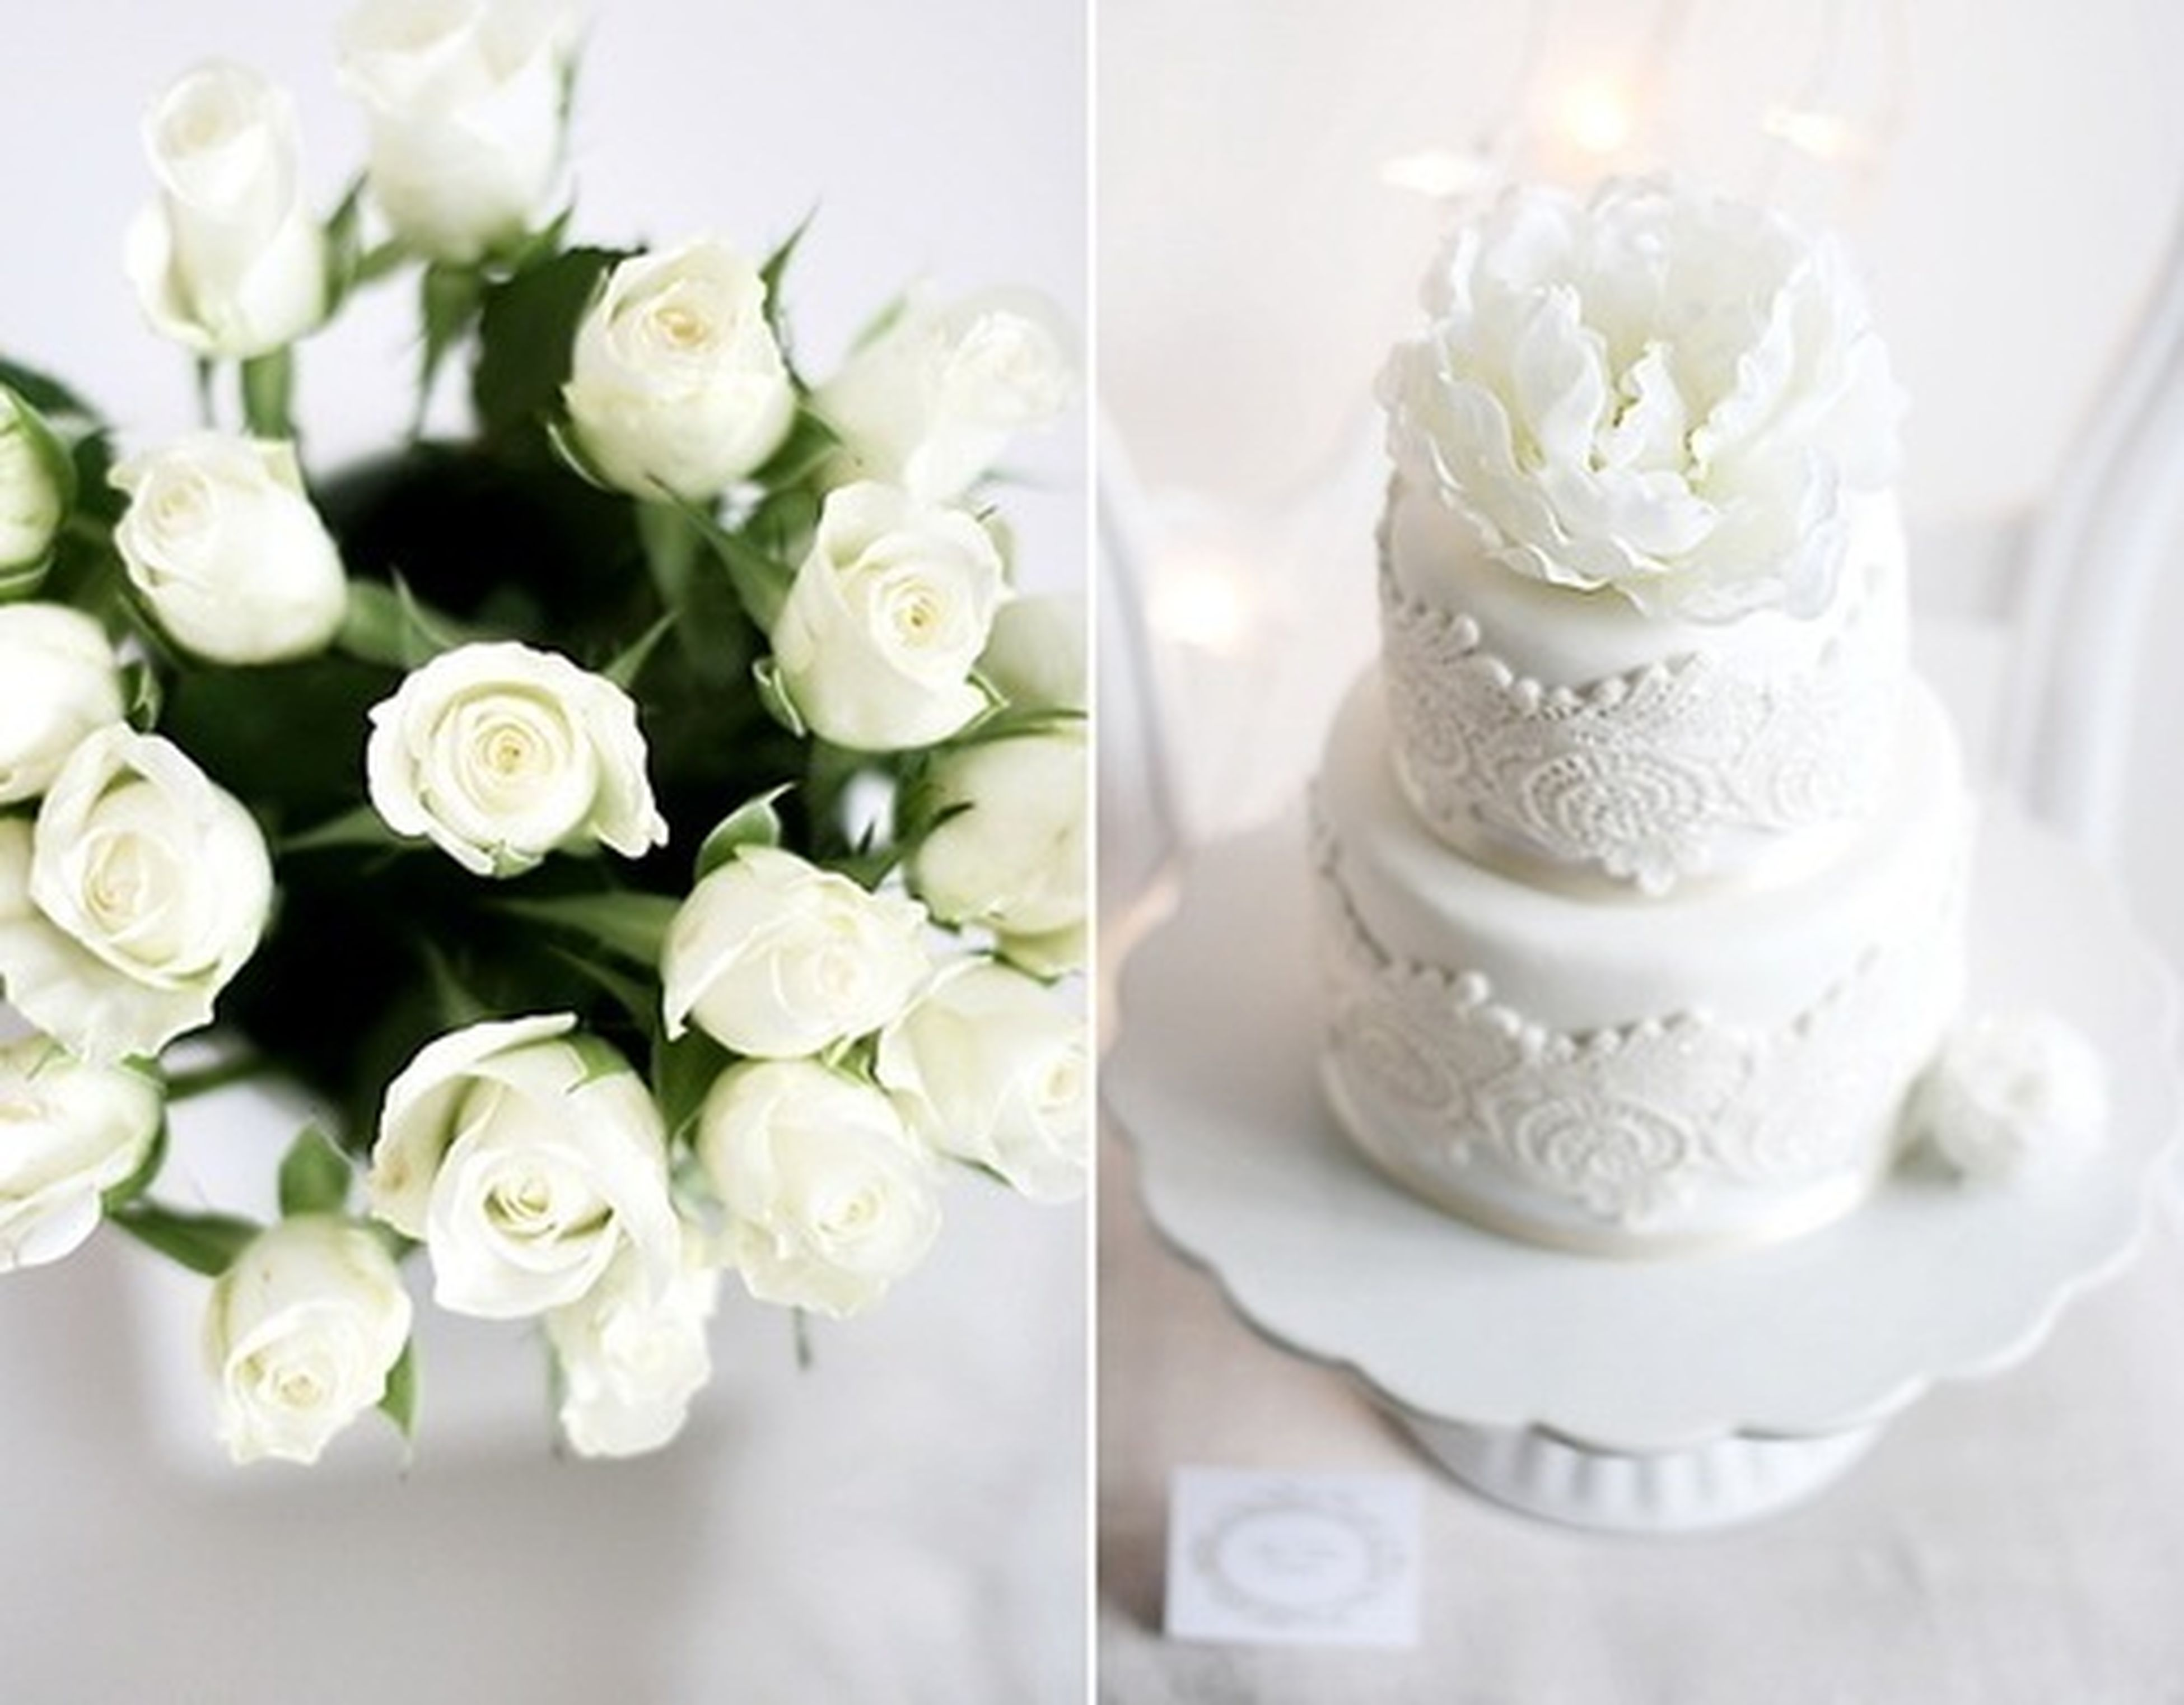 indoors, freshness, flower, white color, close-up, still life, petal, fragility, sweet food, table, white, food and drink, vase, rose - flower, no people, flower head, decoration, high angle view, bunch of flowers, focus on foreground